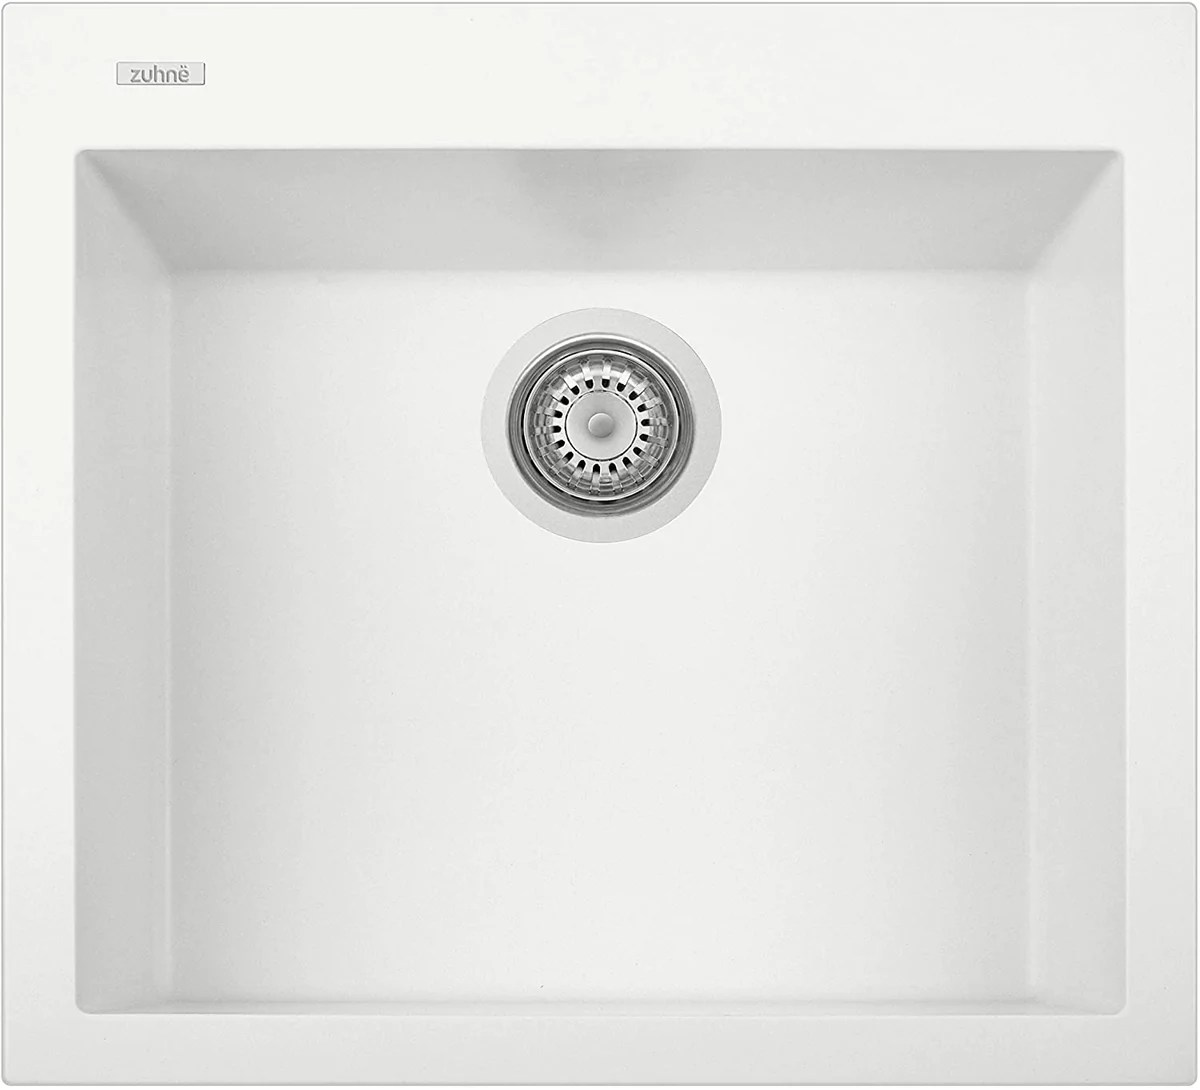 zuhne pure white under mount or drop in single kitchen sink with drain strainer made in italy